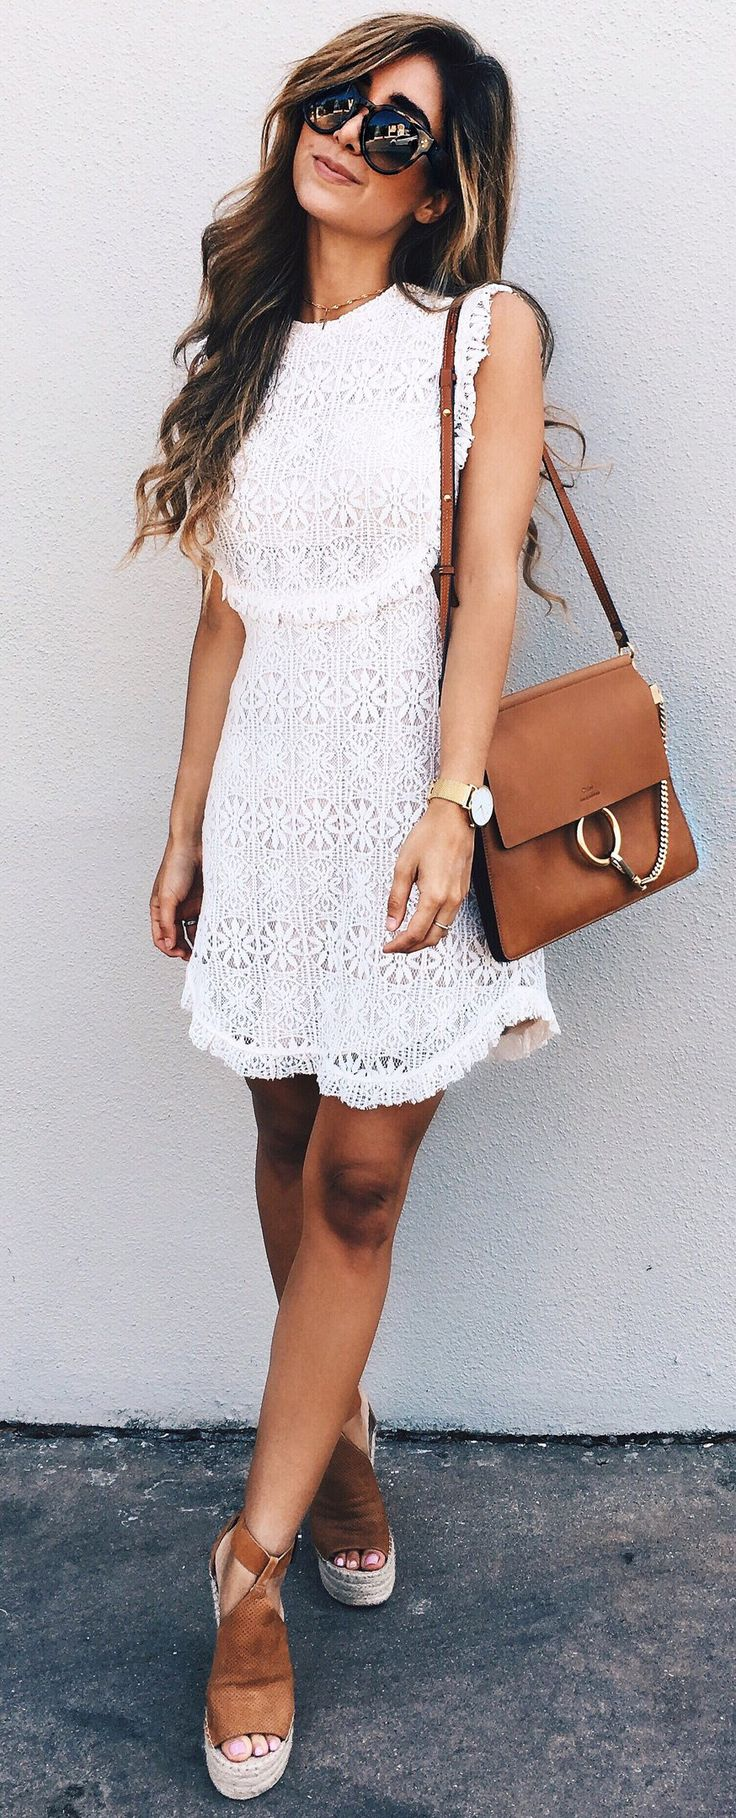 #spring #outfits  Keeping Things Simple In A Little Lace Dress... ❤️ So Cute For Easter // Beautiful Days Like Today ☀️